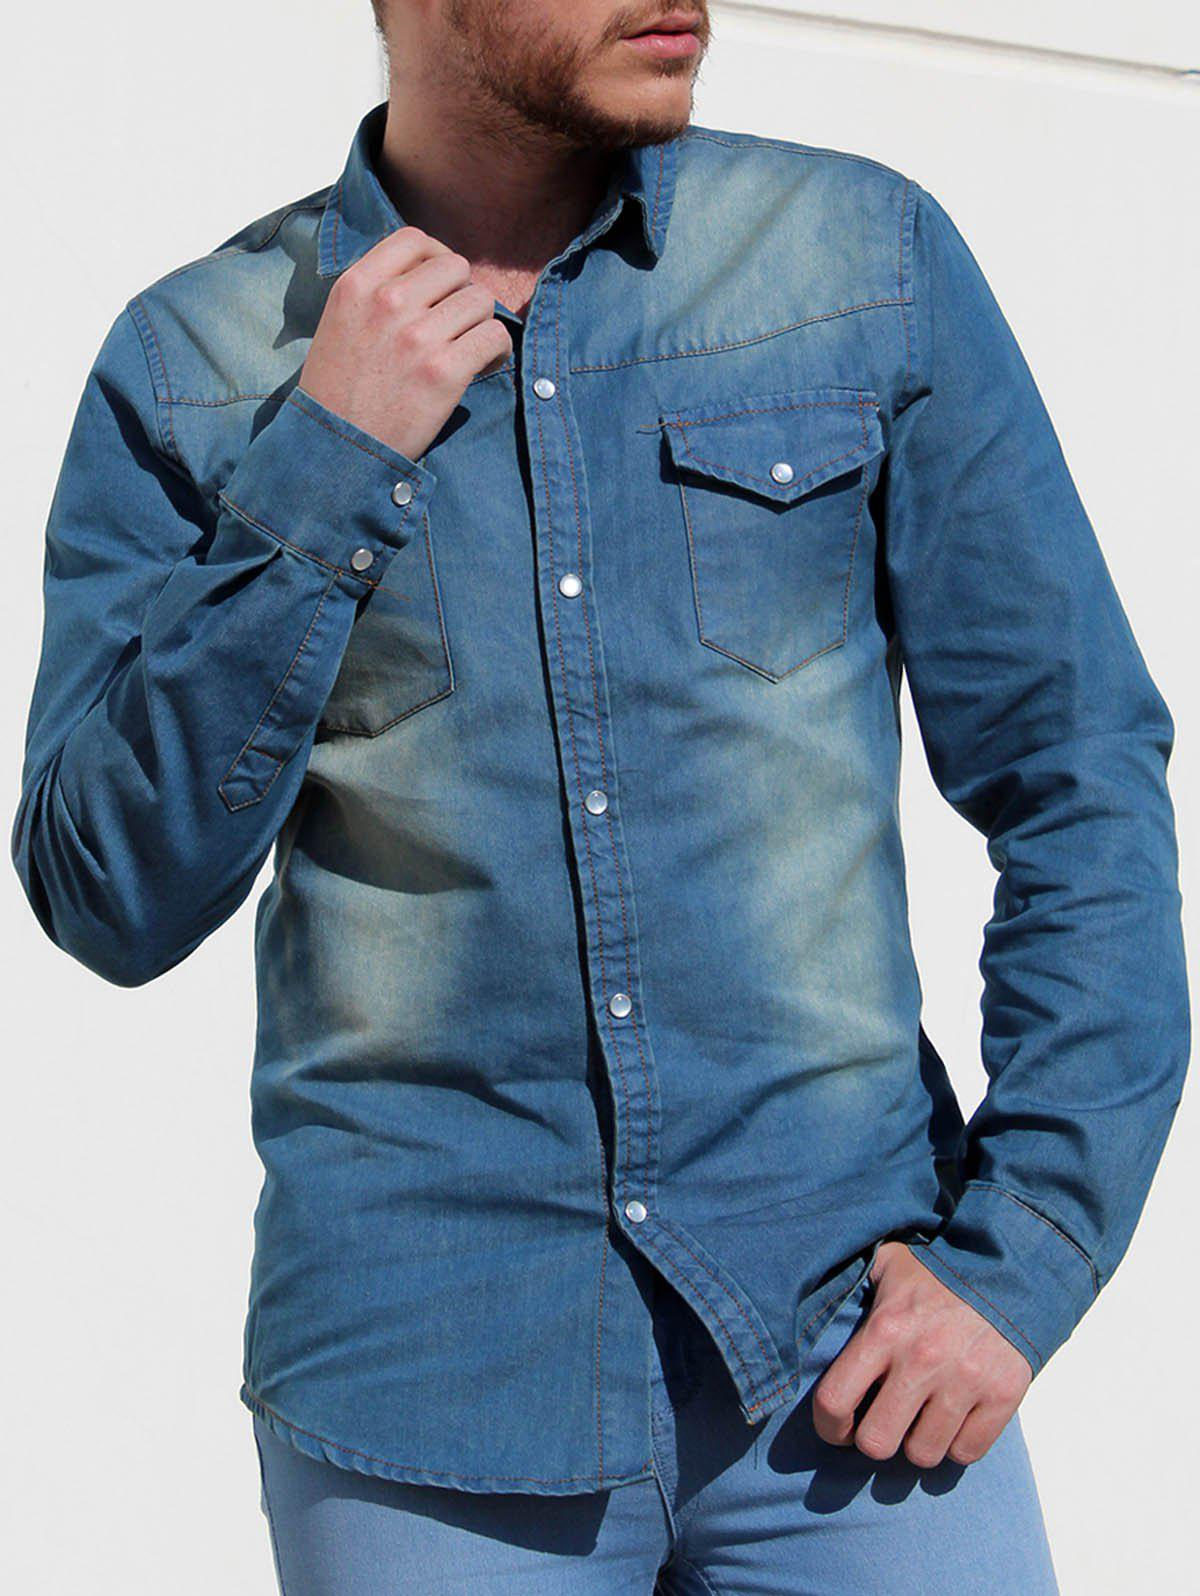 Modish Simple Turn-Down Collar Patch Pocket Long Sleeve Men's Denim Shirt - DEEP BLUE M